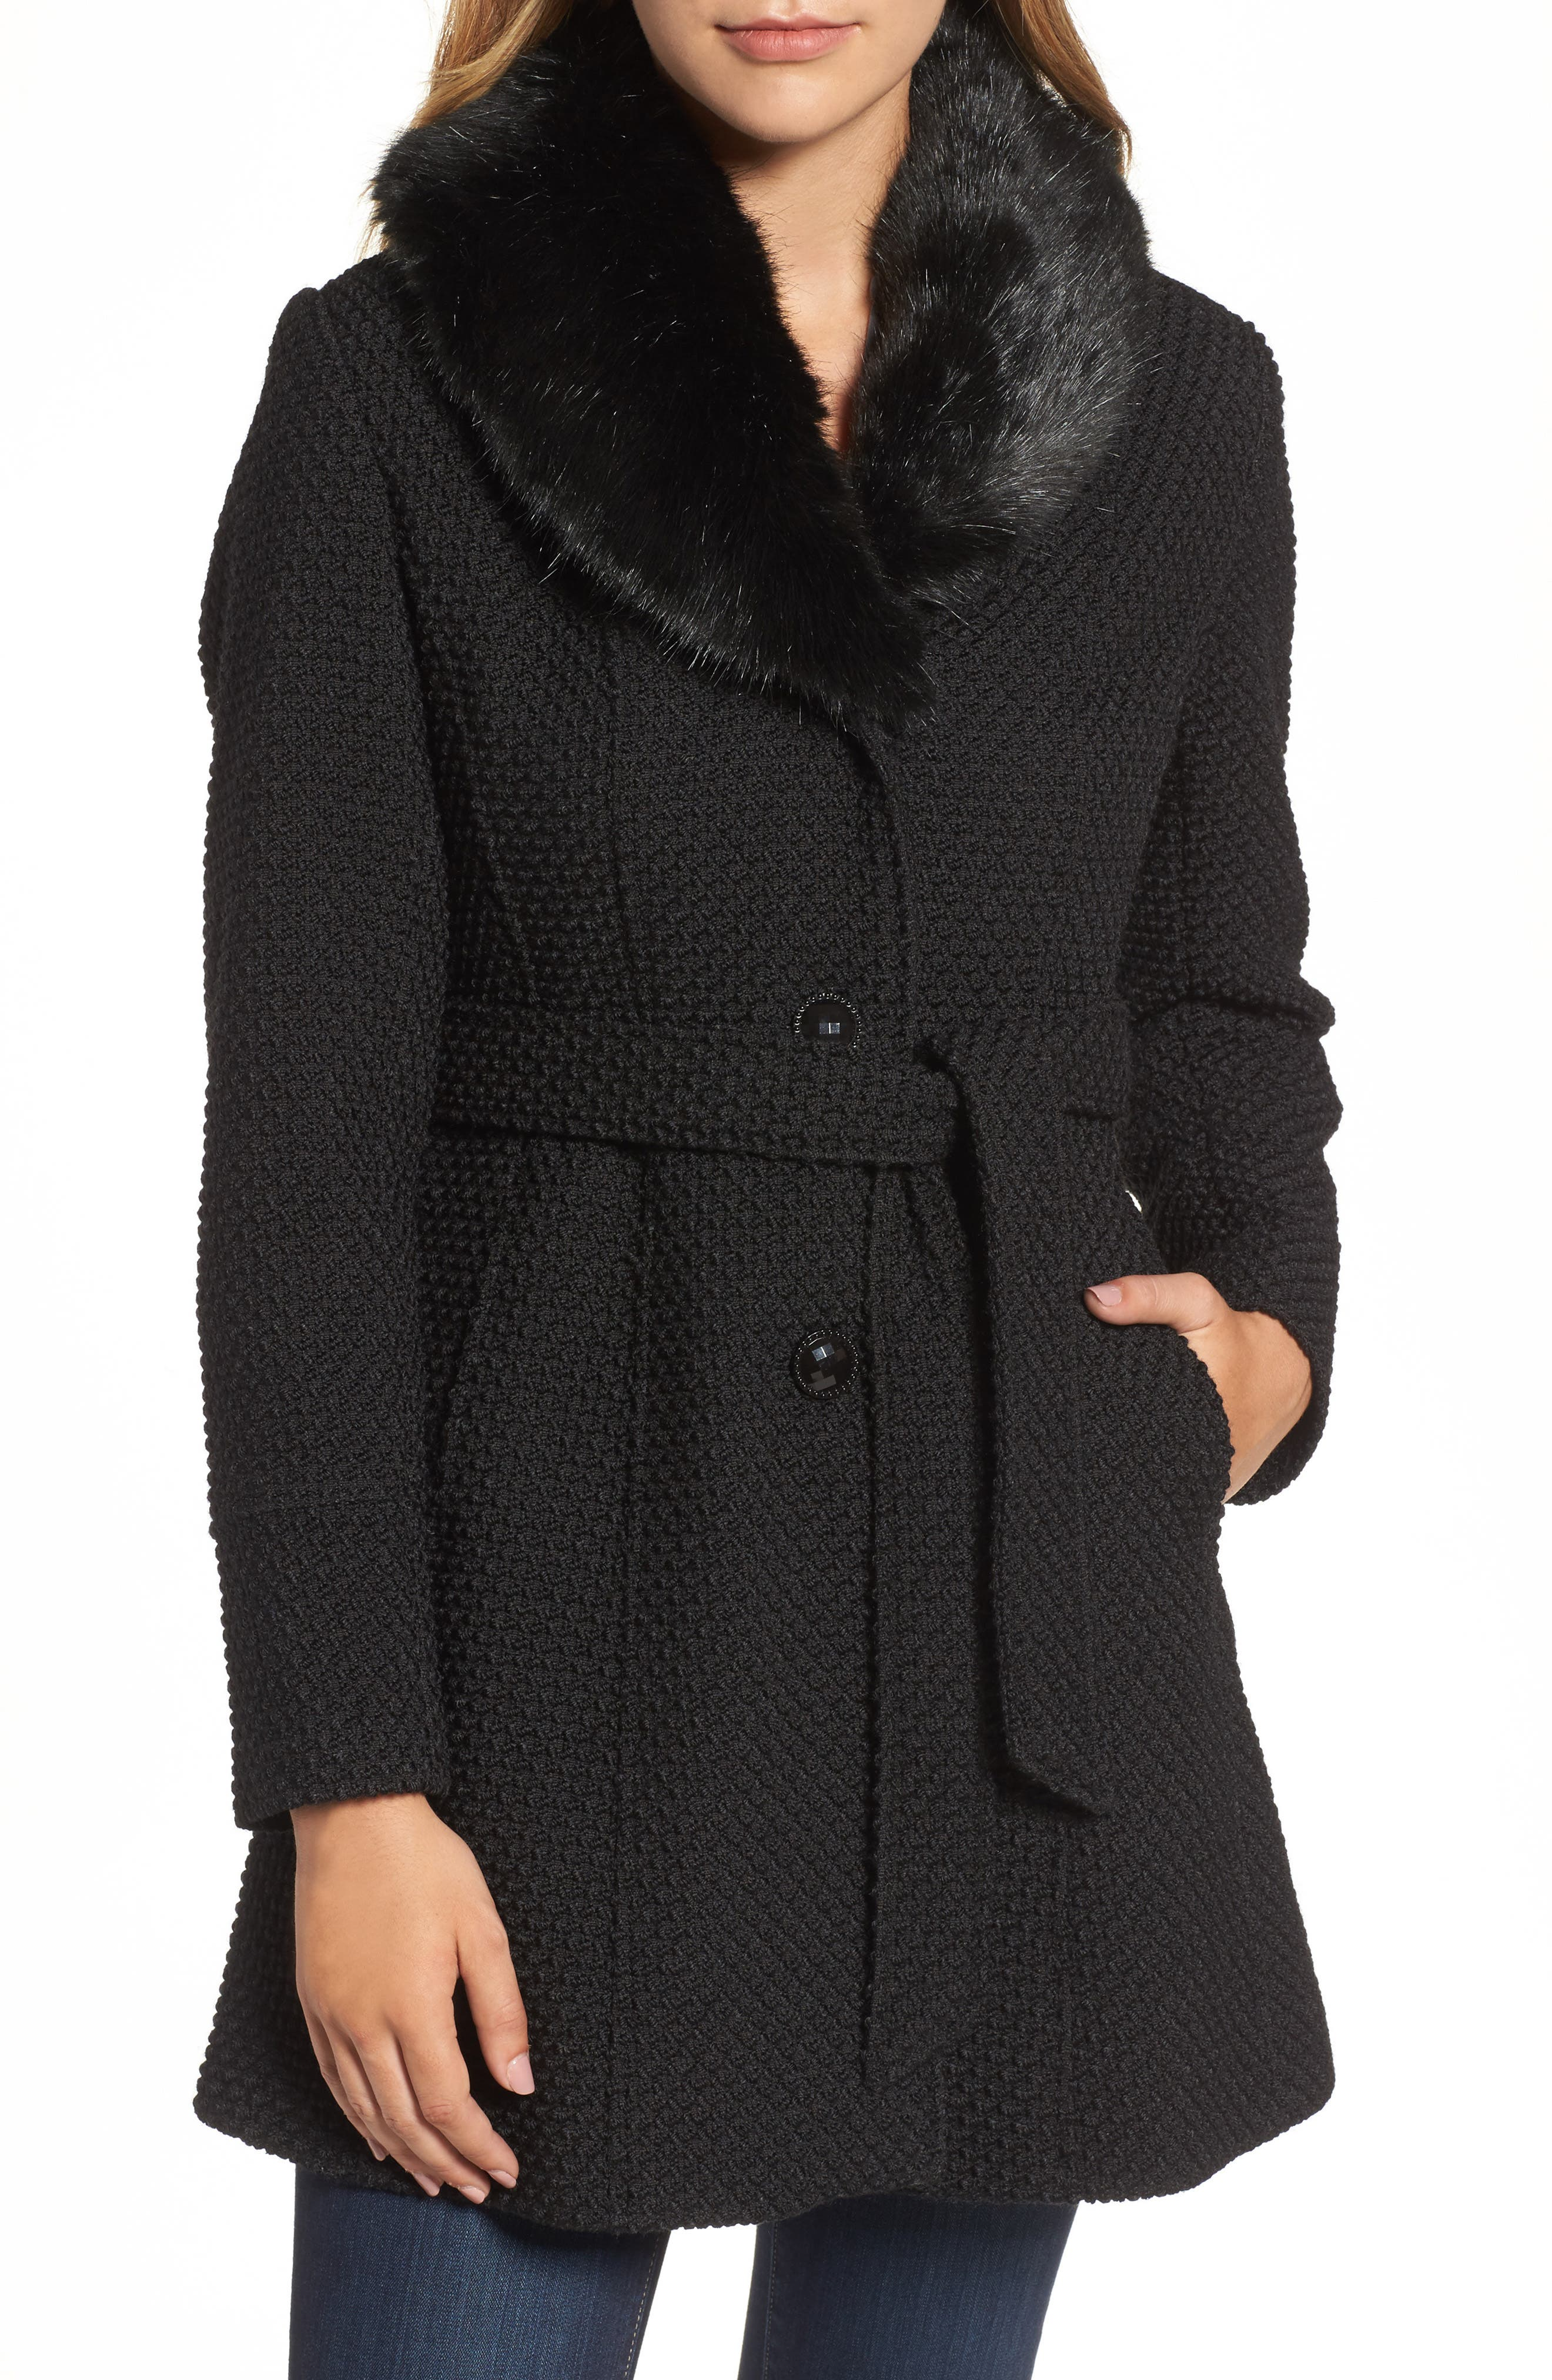 Belted Coat with Faux Fur Collar,                             Main thumbnail 1, color,                             001